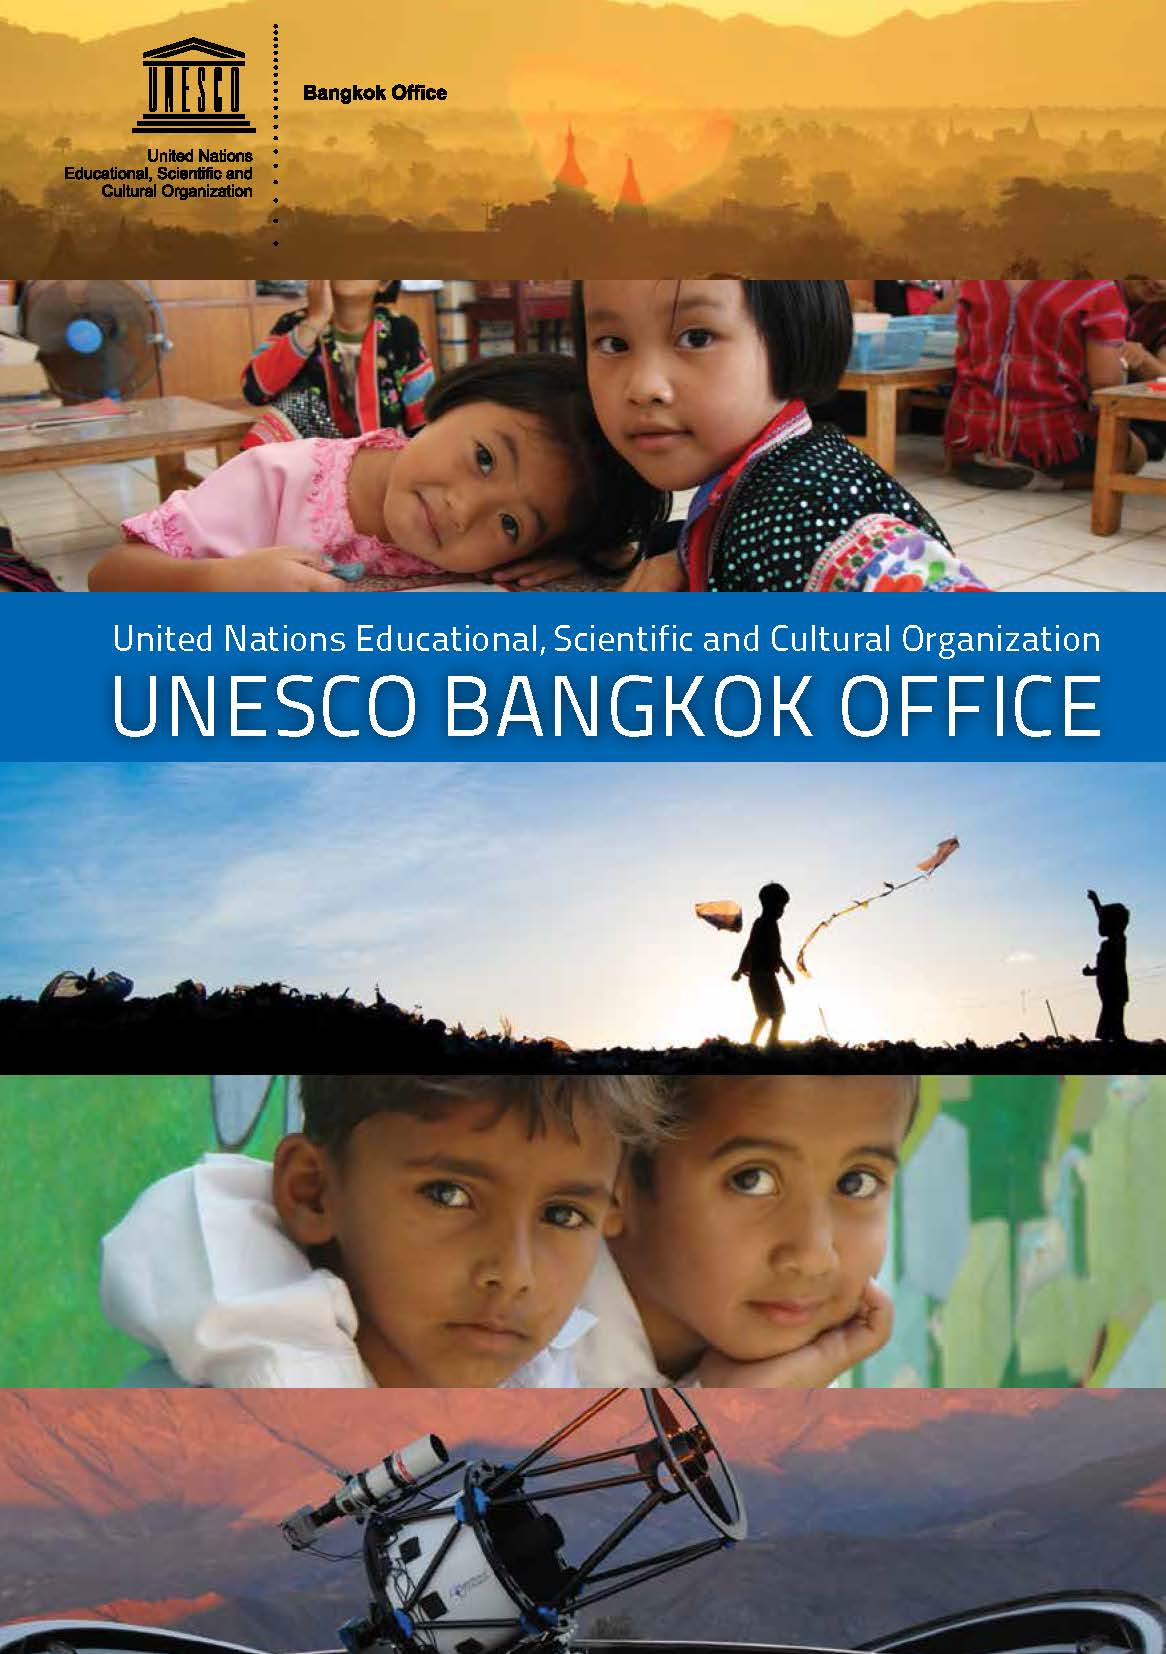 Cover of a brochure about UNESCO's Bangkok office.